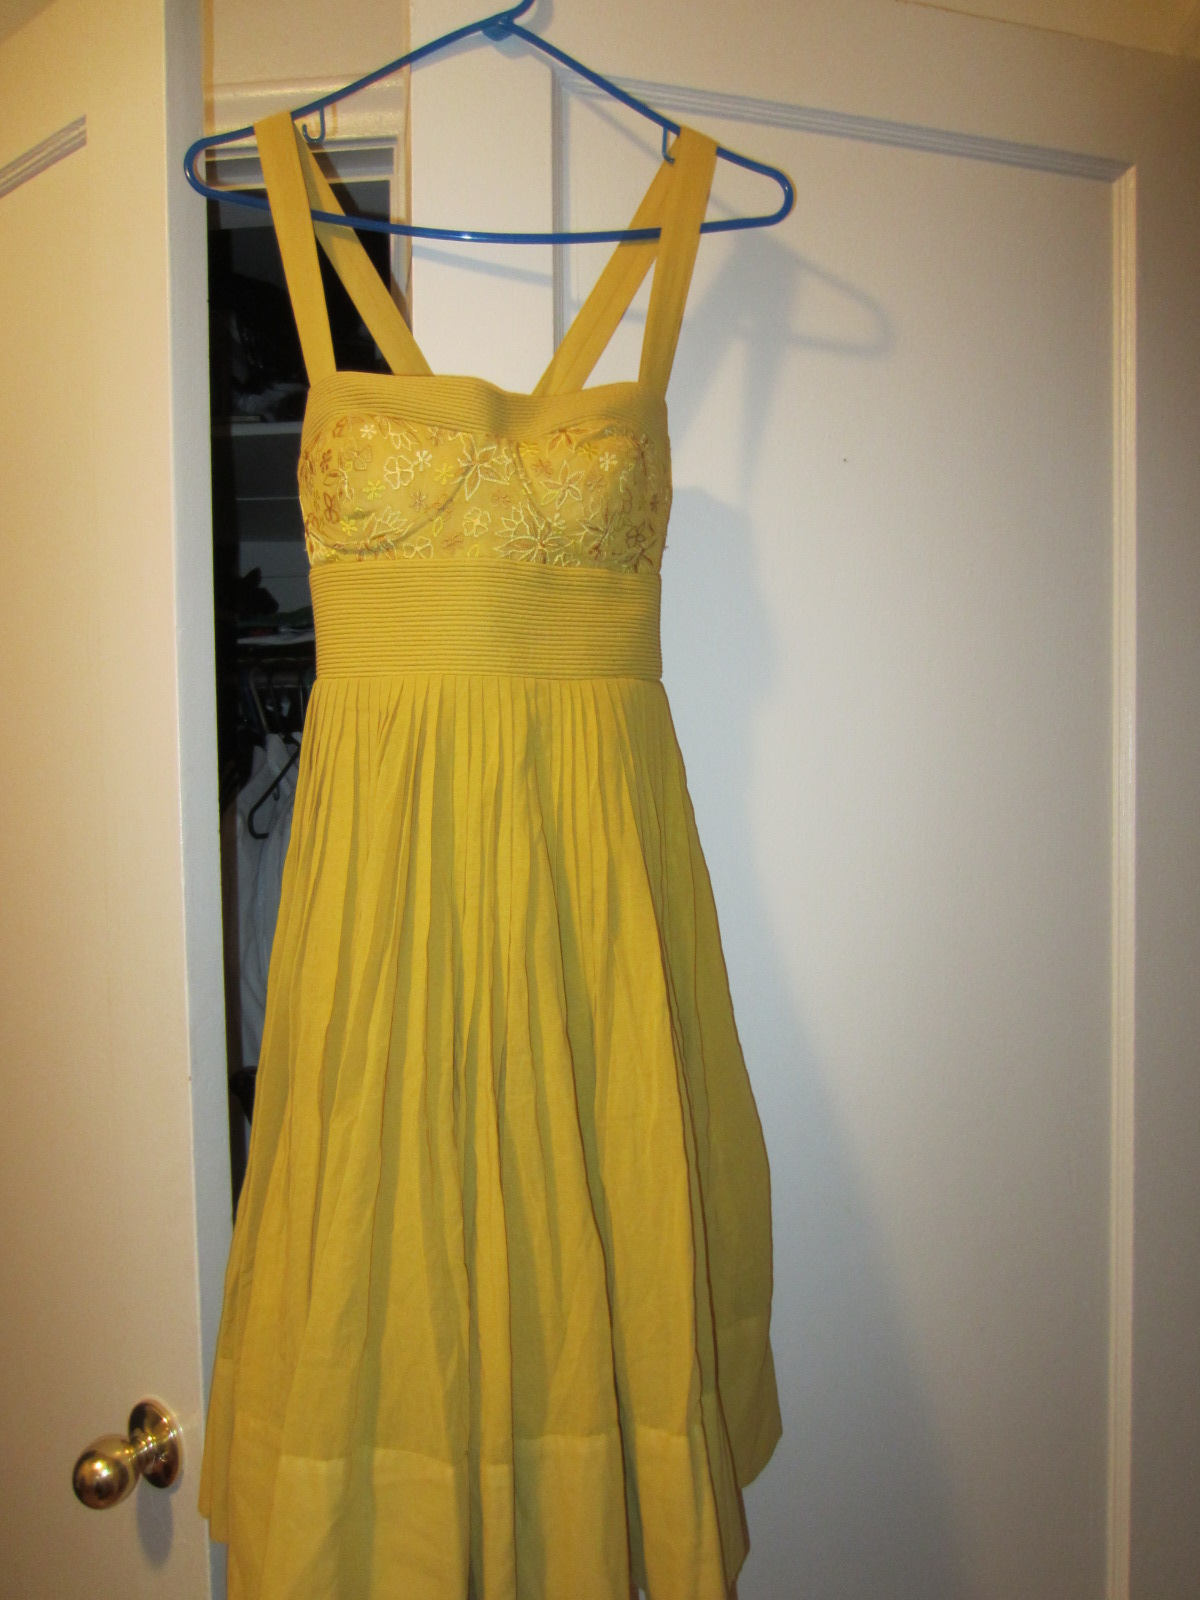 eadd310203b2 Anthro Galore Closet Sale: **SOLD** NWOT Anthropologie Spiced Dress ...